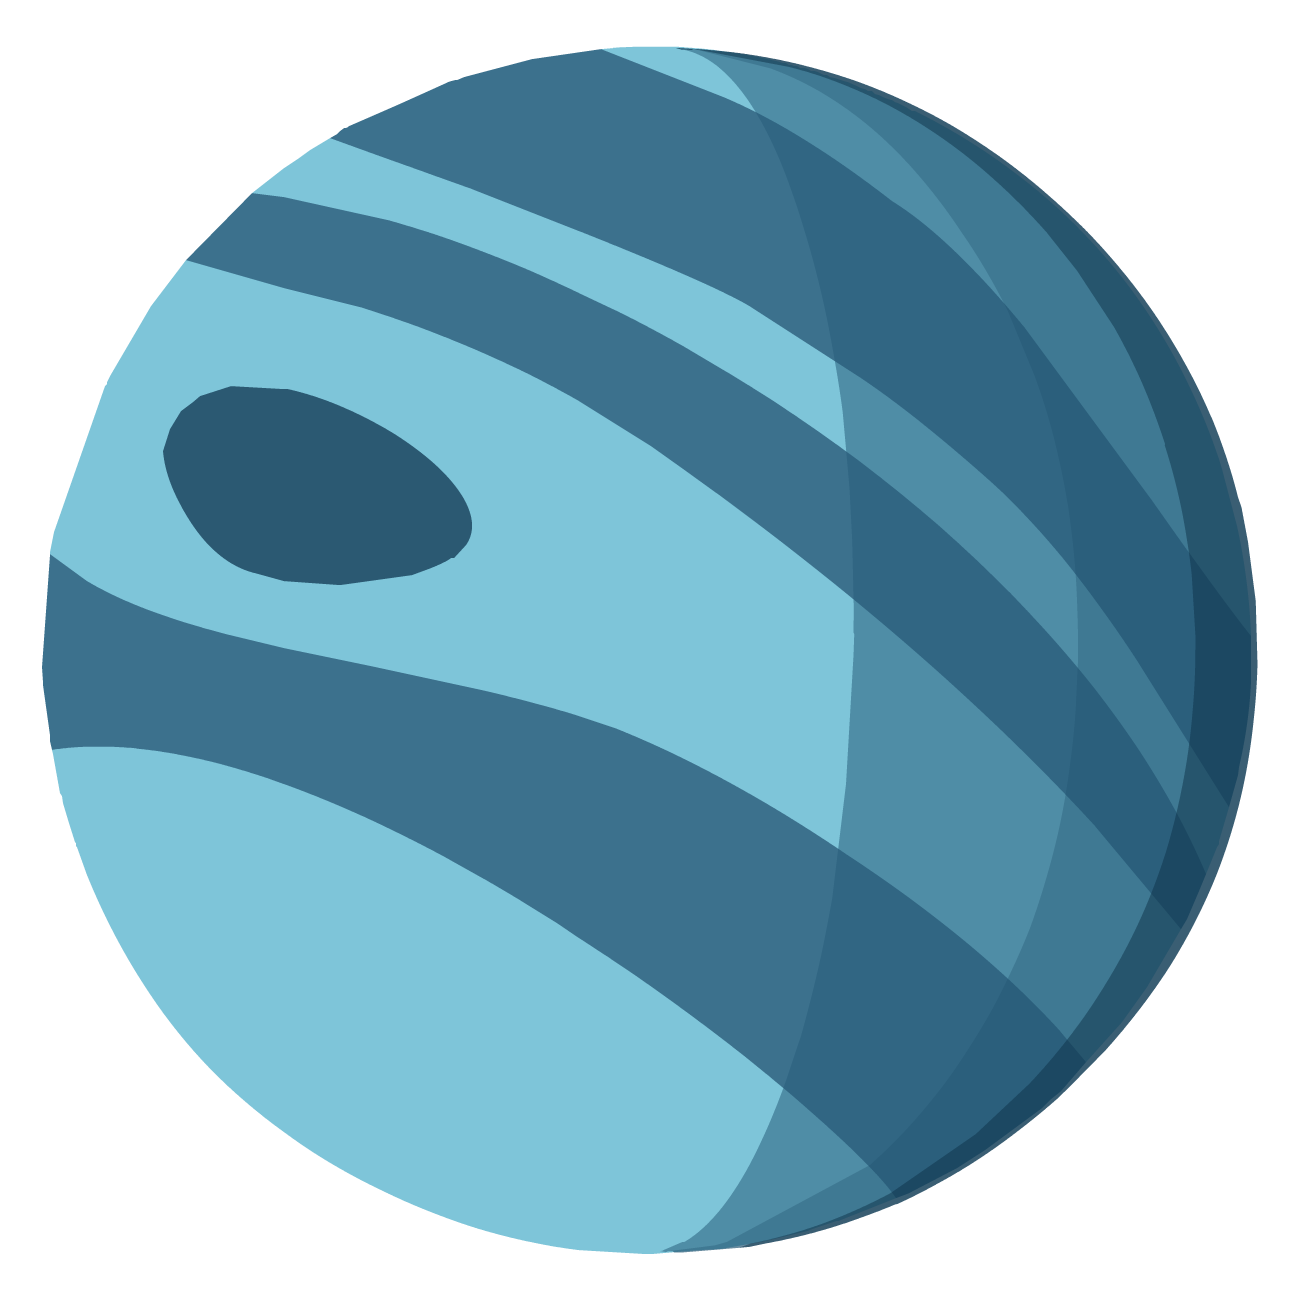 Planets clipart ring png PlanetsCartoon ECI201 cartoon planet Pinterest